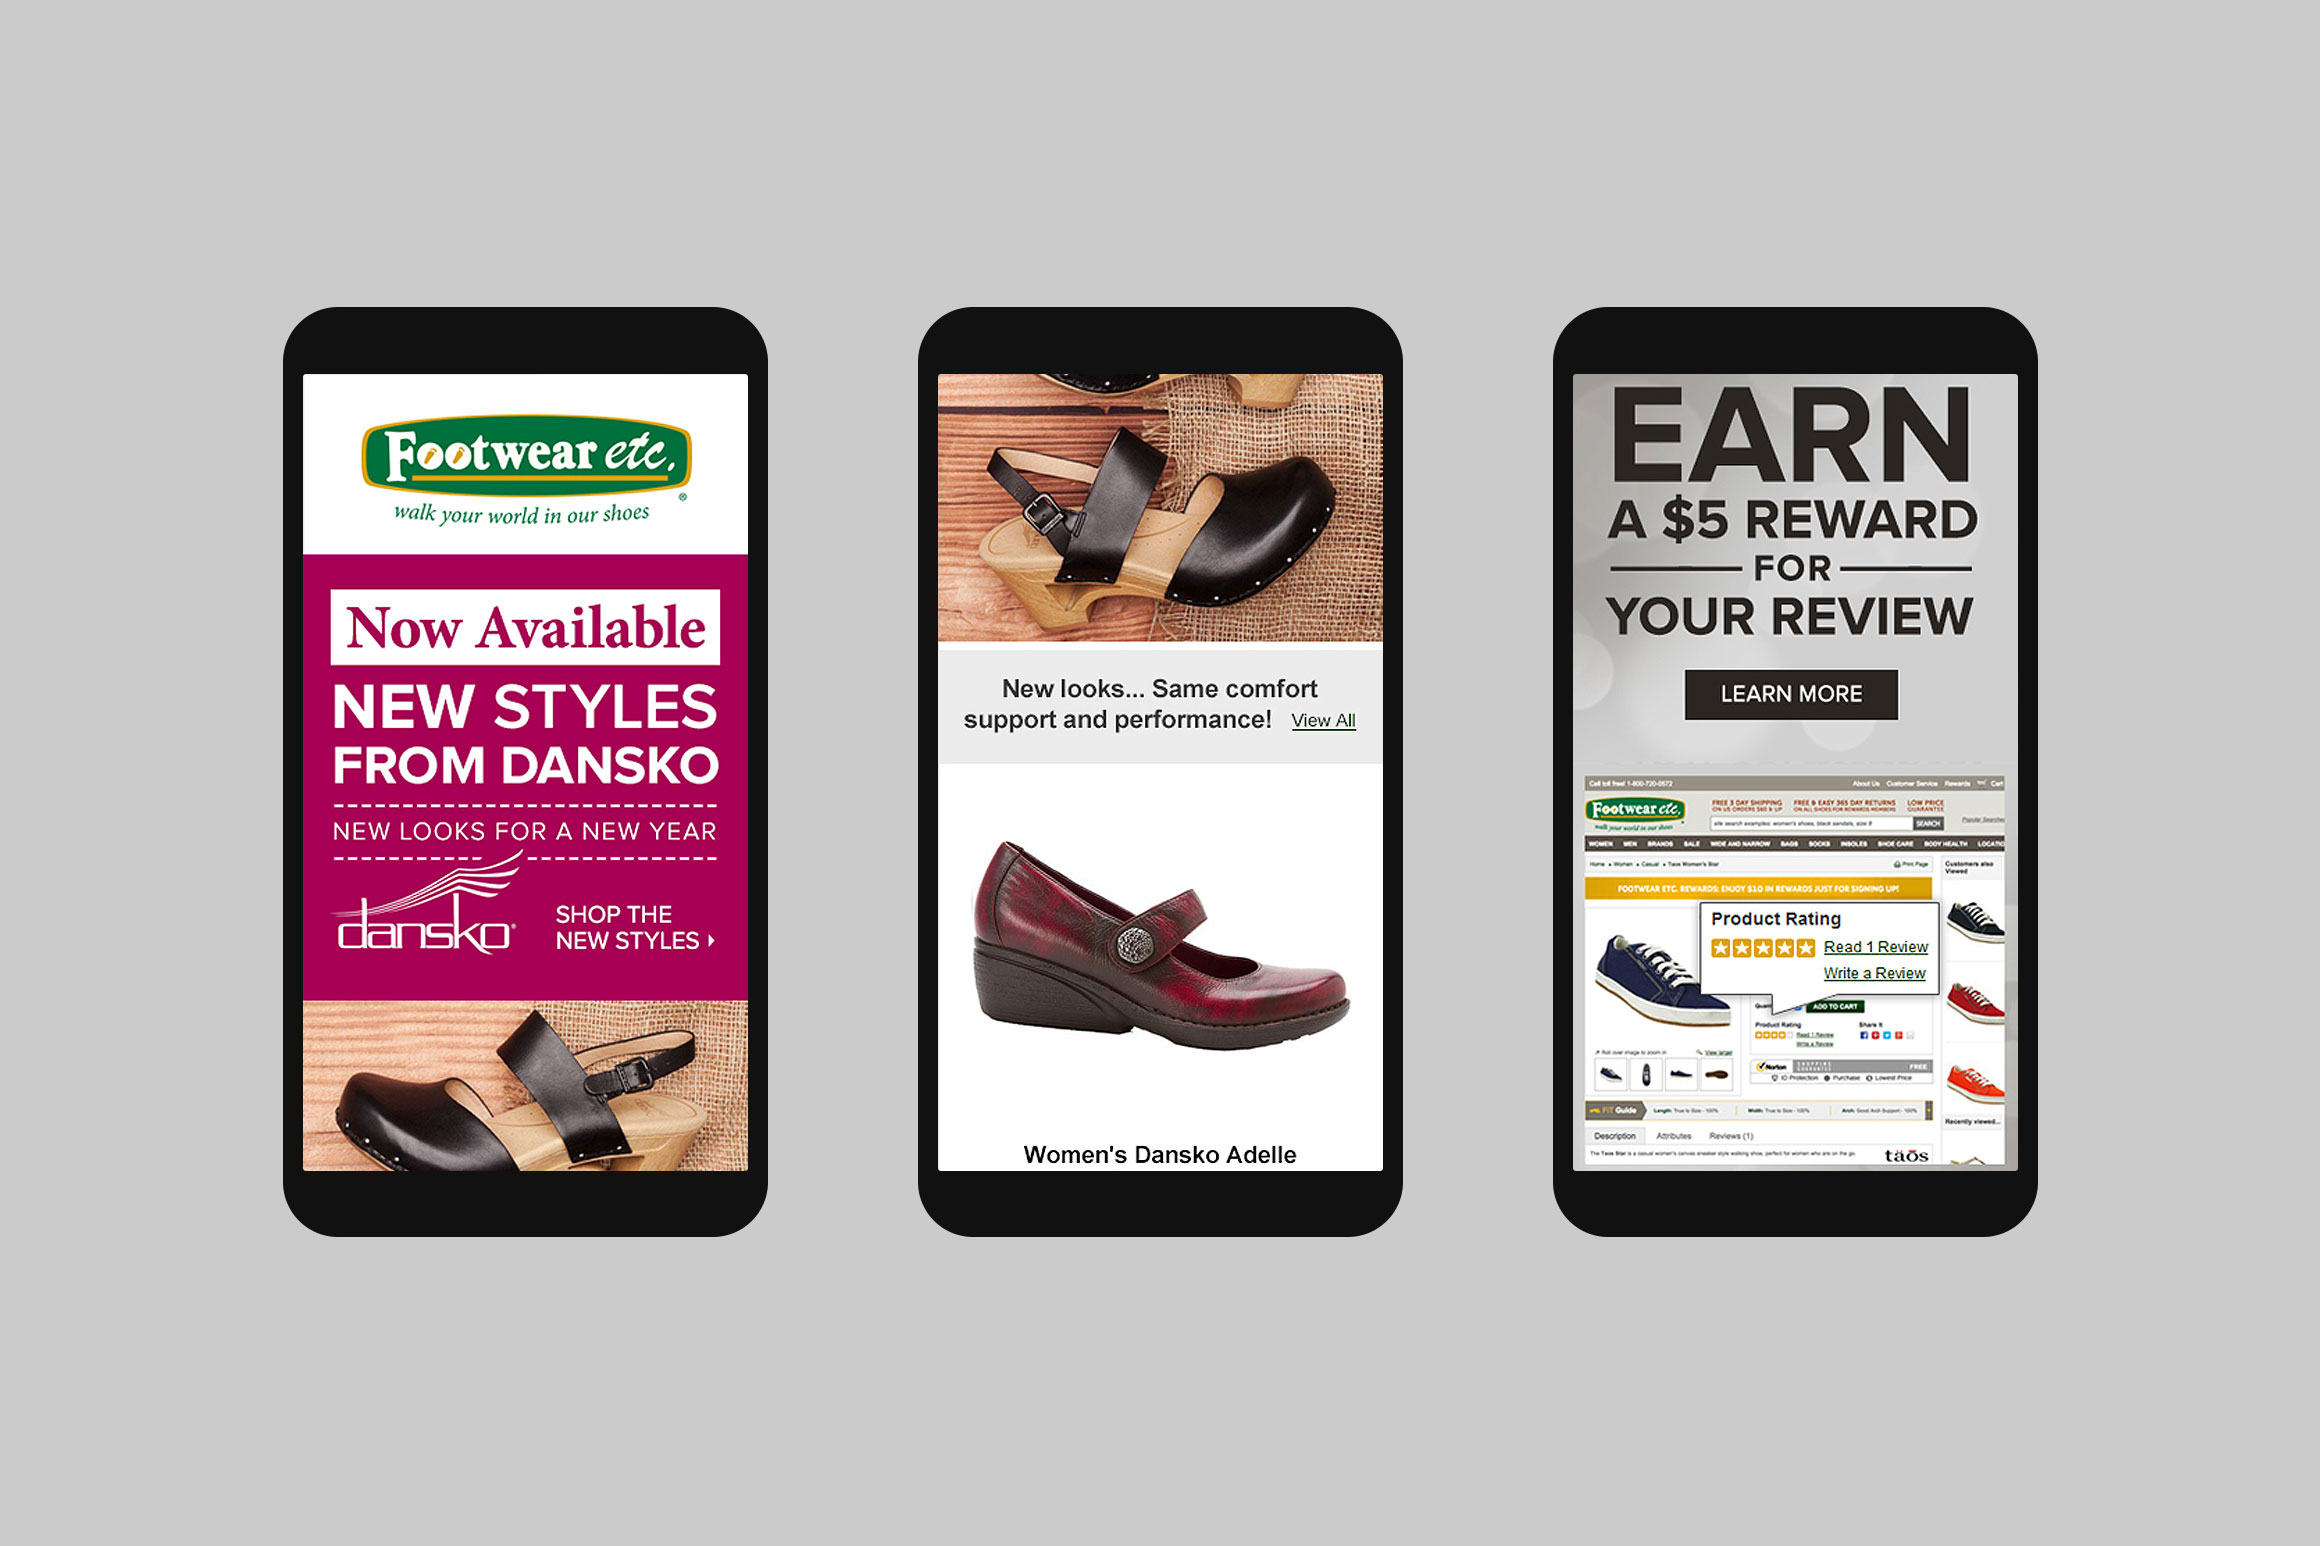 Footwear etc. Mobile Email Template #6